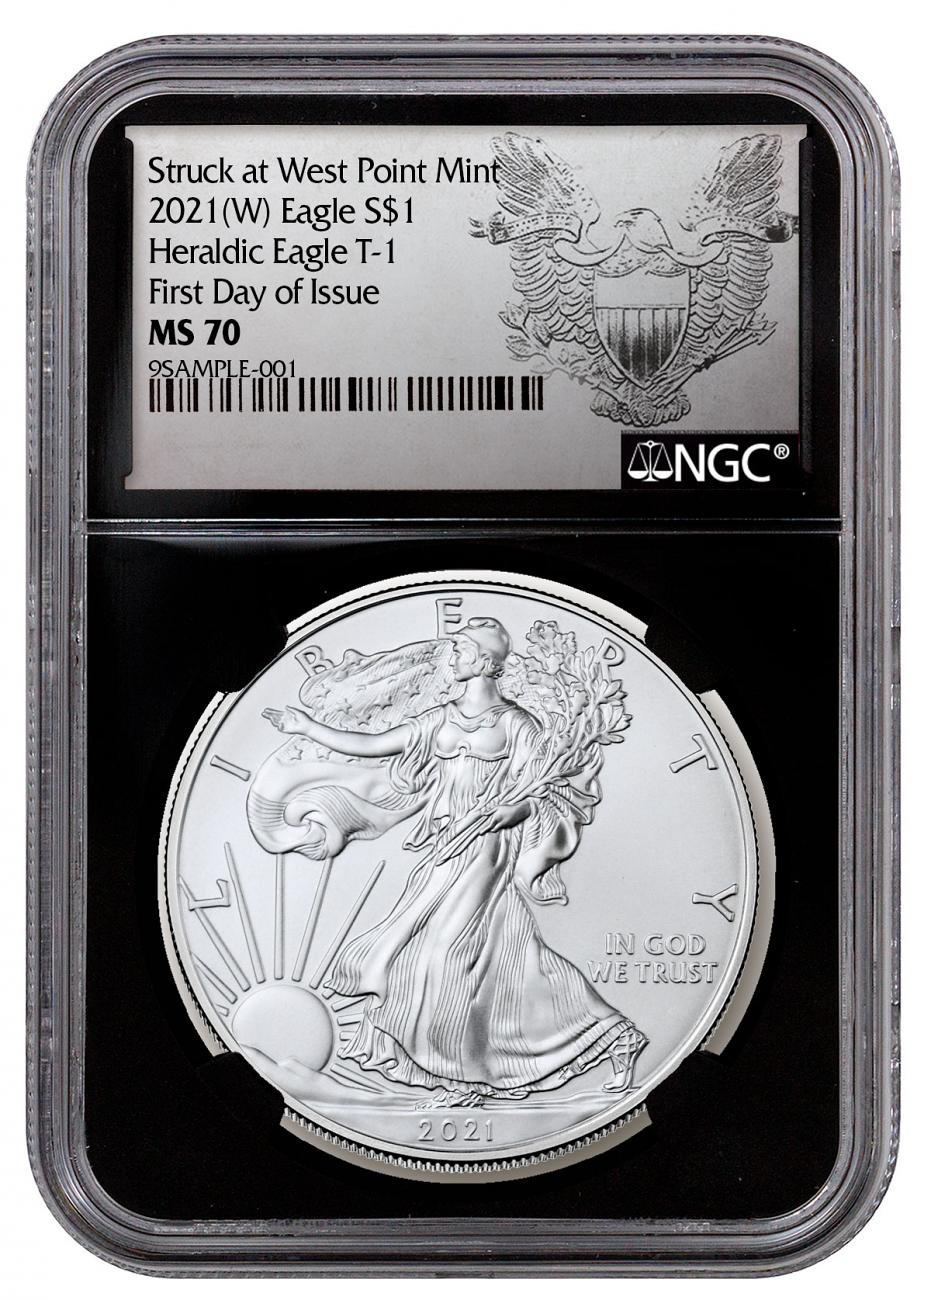 2021-(W) American Silver Eagle Struck at West Point Mint NGC MS70 FDI Black Core Holder Exclusive Heraldic Eagle Label